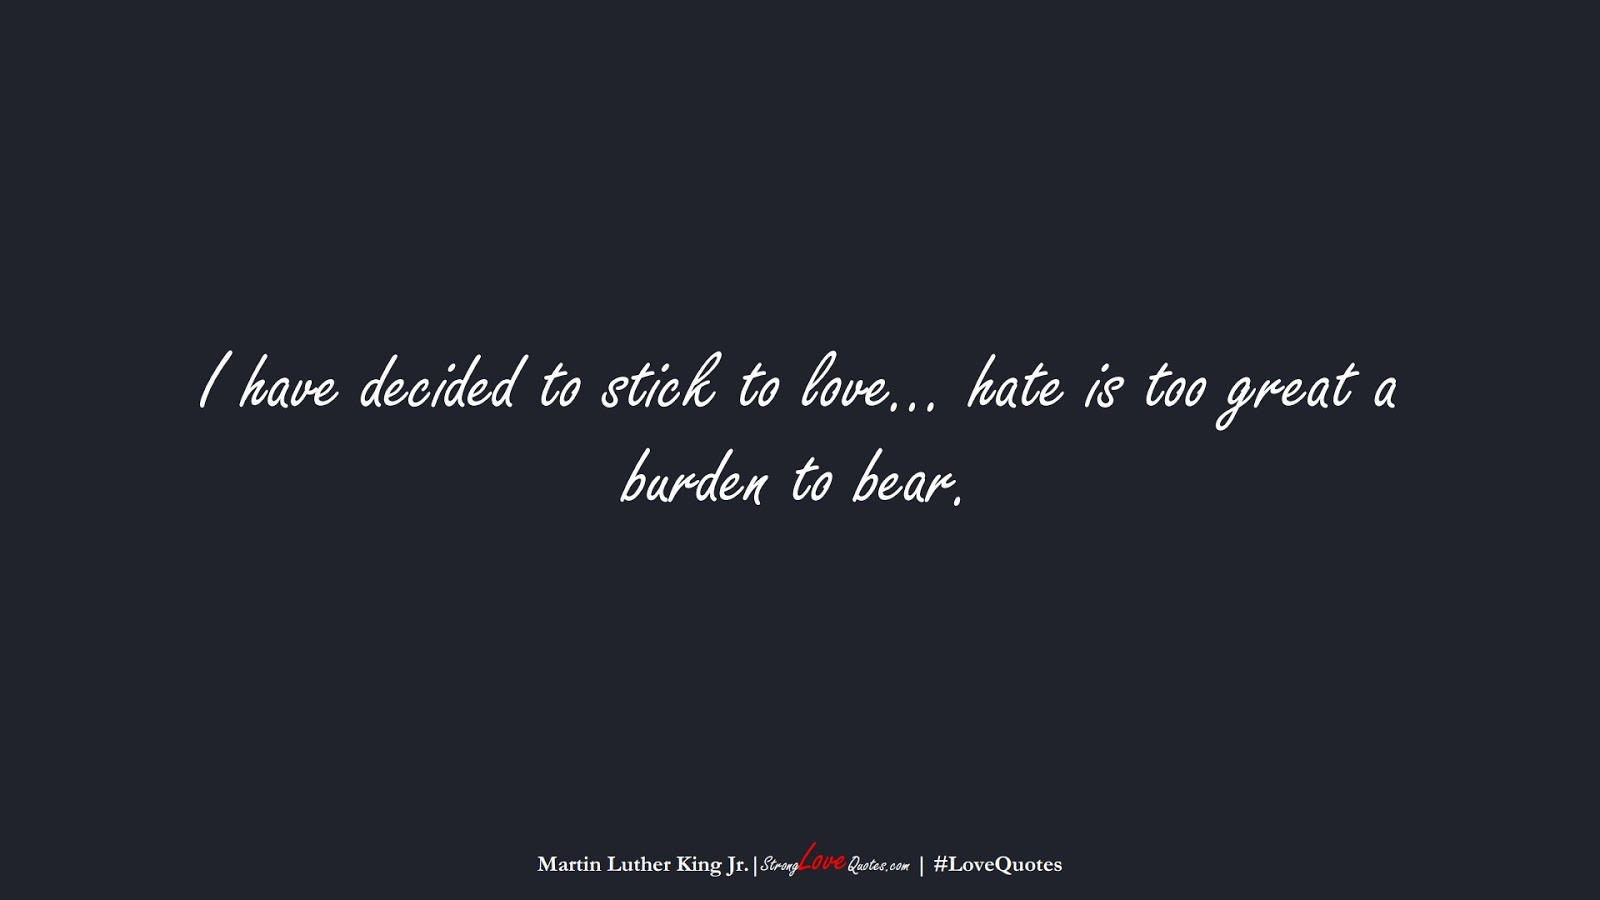 I have decided to stick to love… hate is too great a burden to bear. (Martin Luther King Jr.);  #LoveQuotes